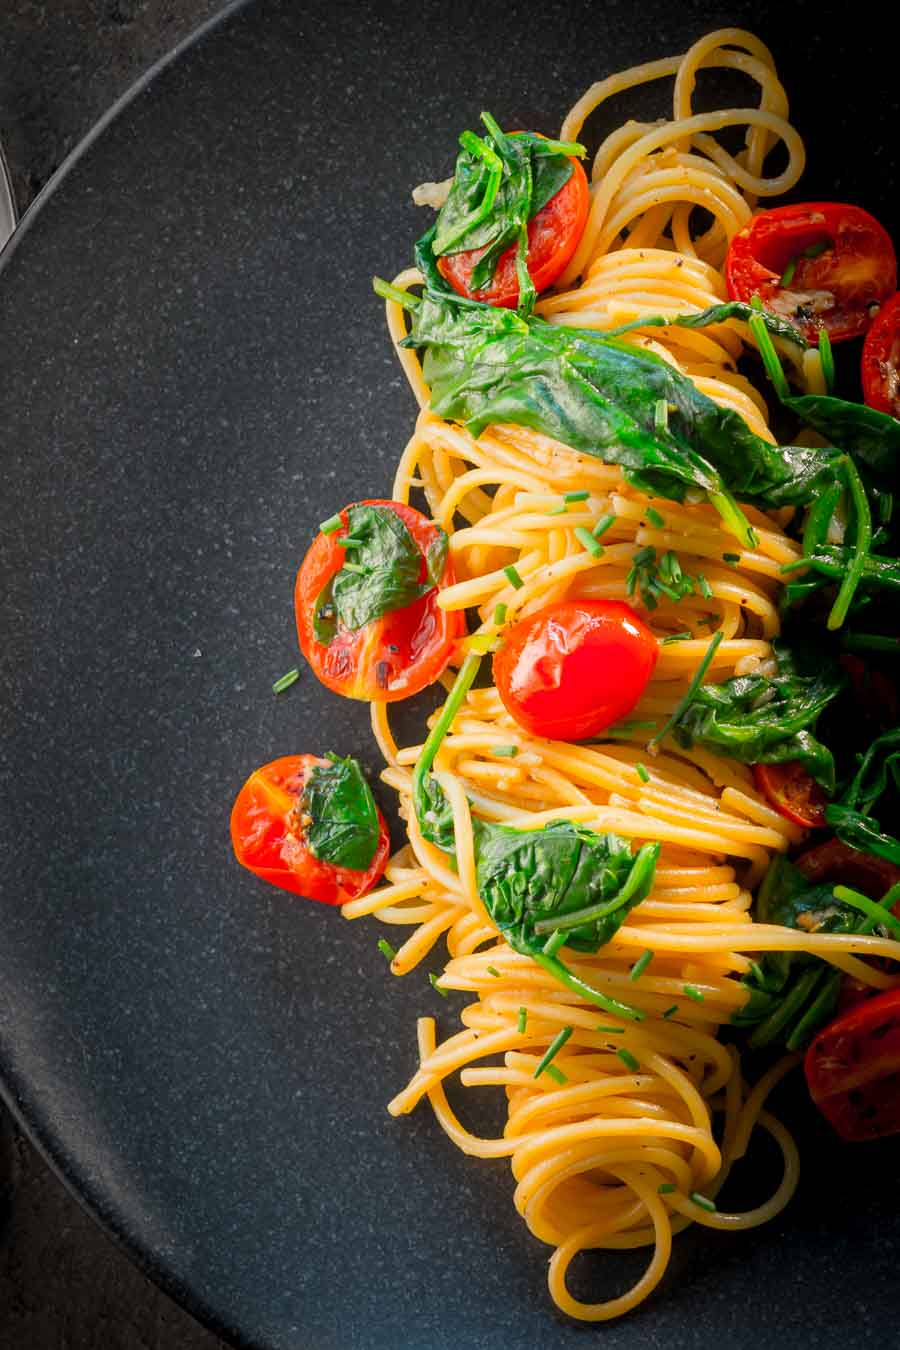 Portrait image of Garlic pasta served in swirl on a dark plate with seared tomatoes and wilted spinach